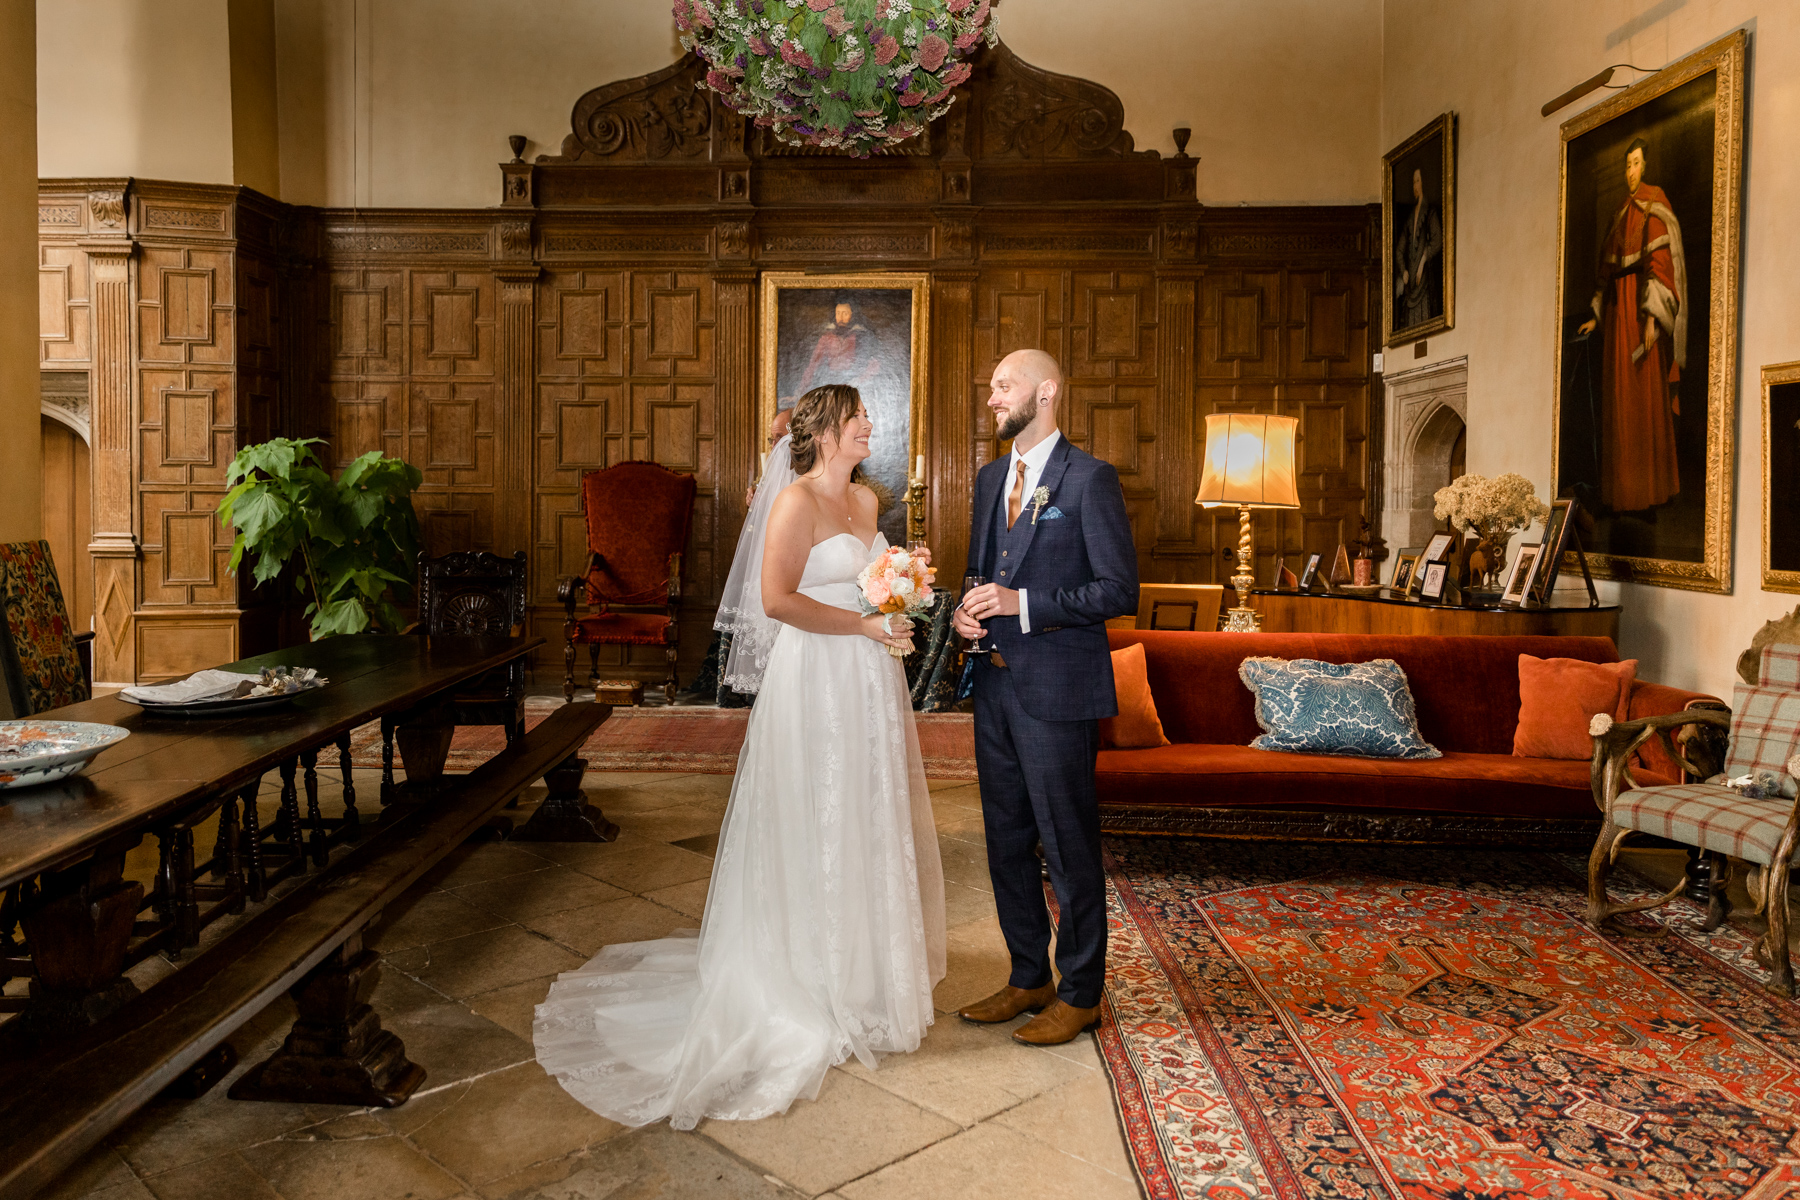 Bride and groom in the great hall